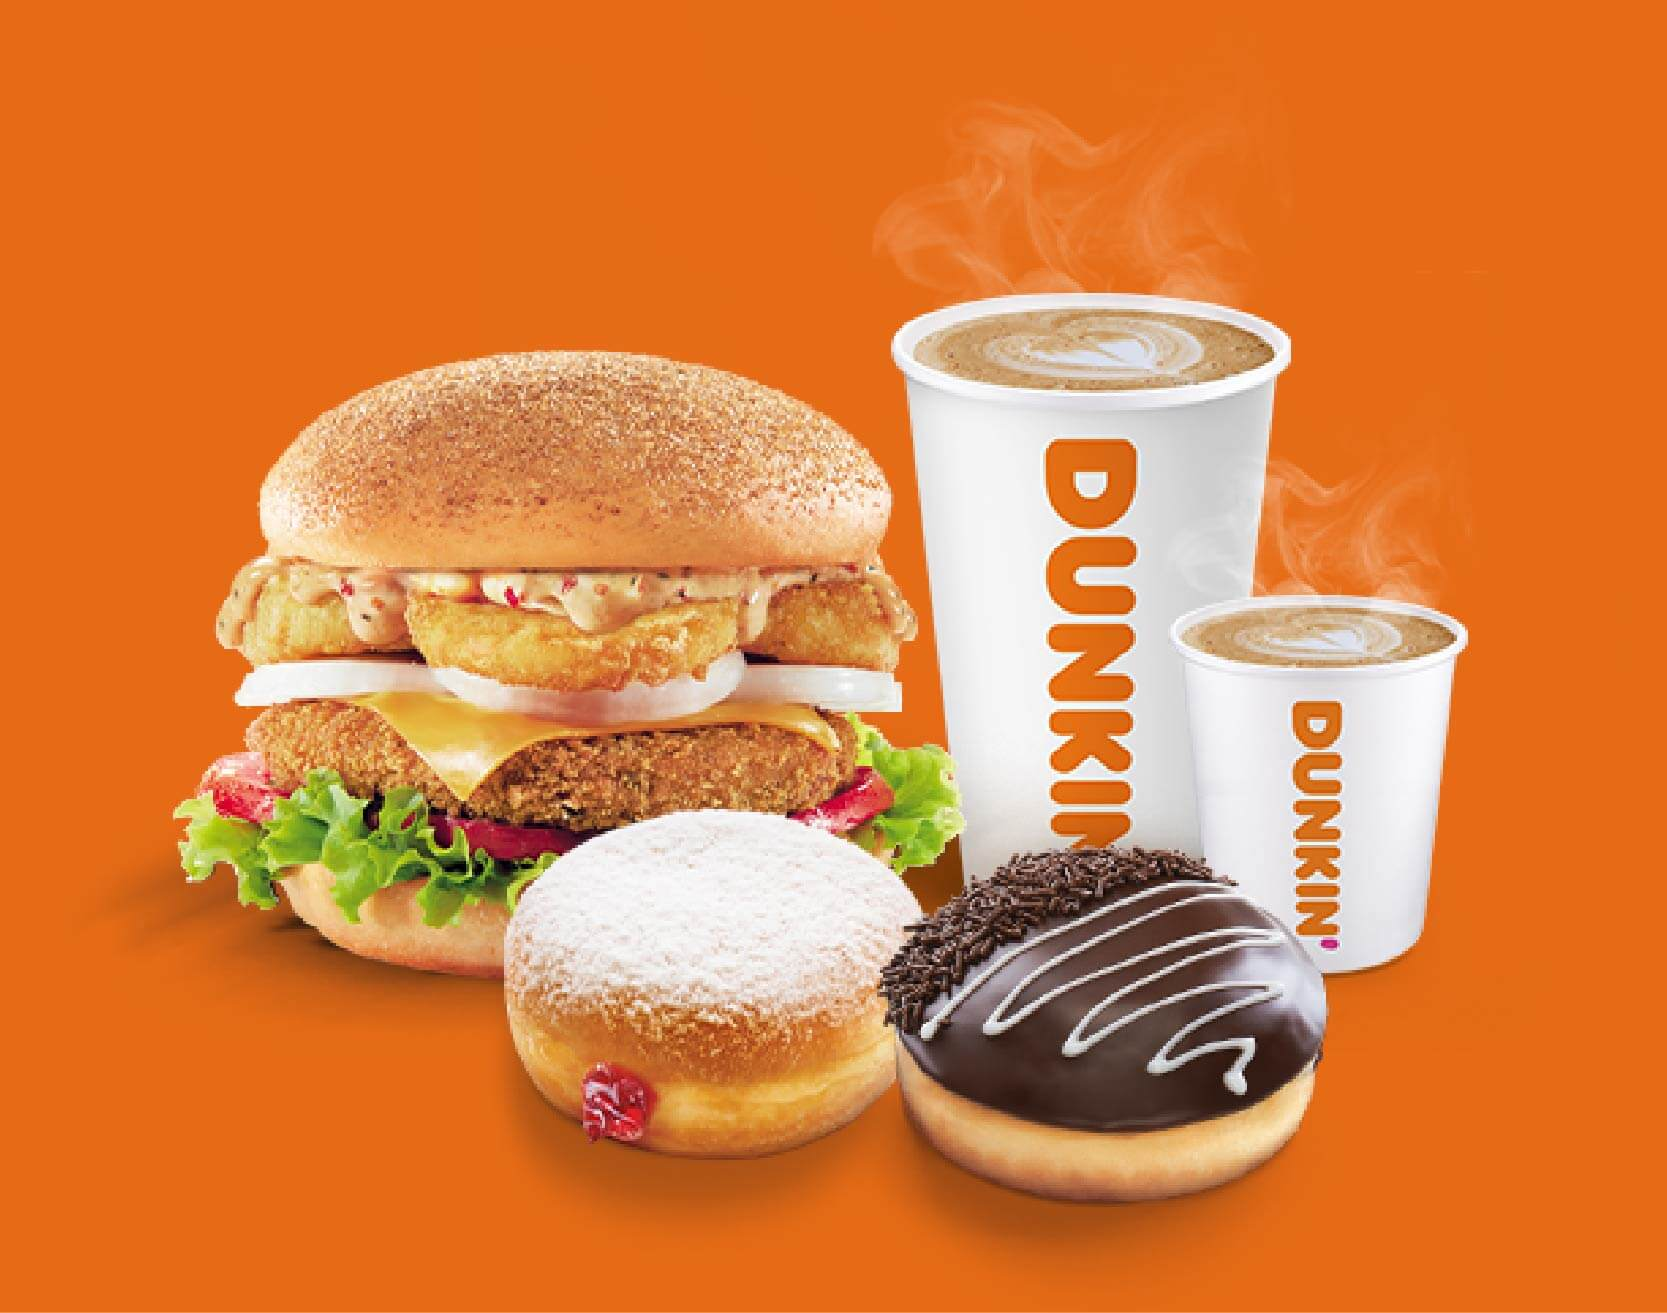 Order Freshly Brewed Coffee, Dunkin Donuts And Burger From Dunkin India